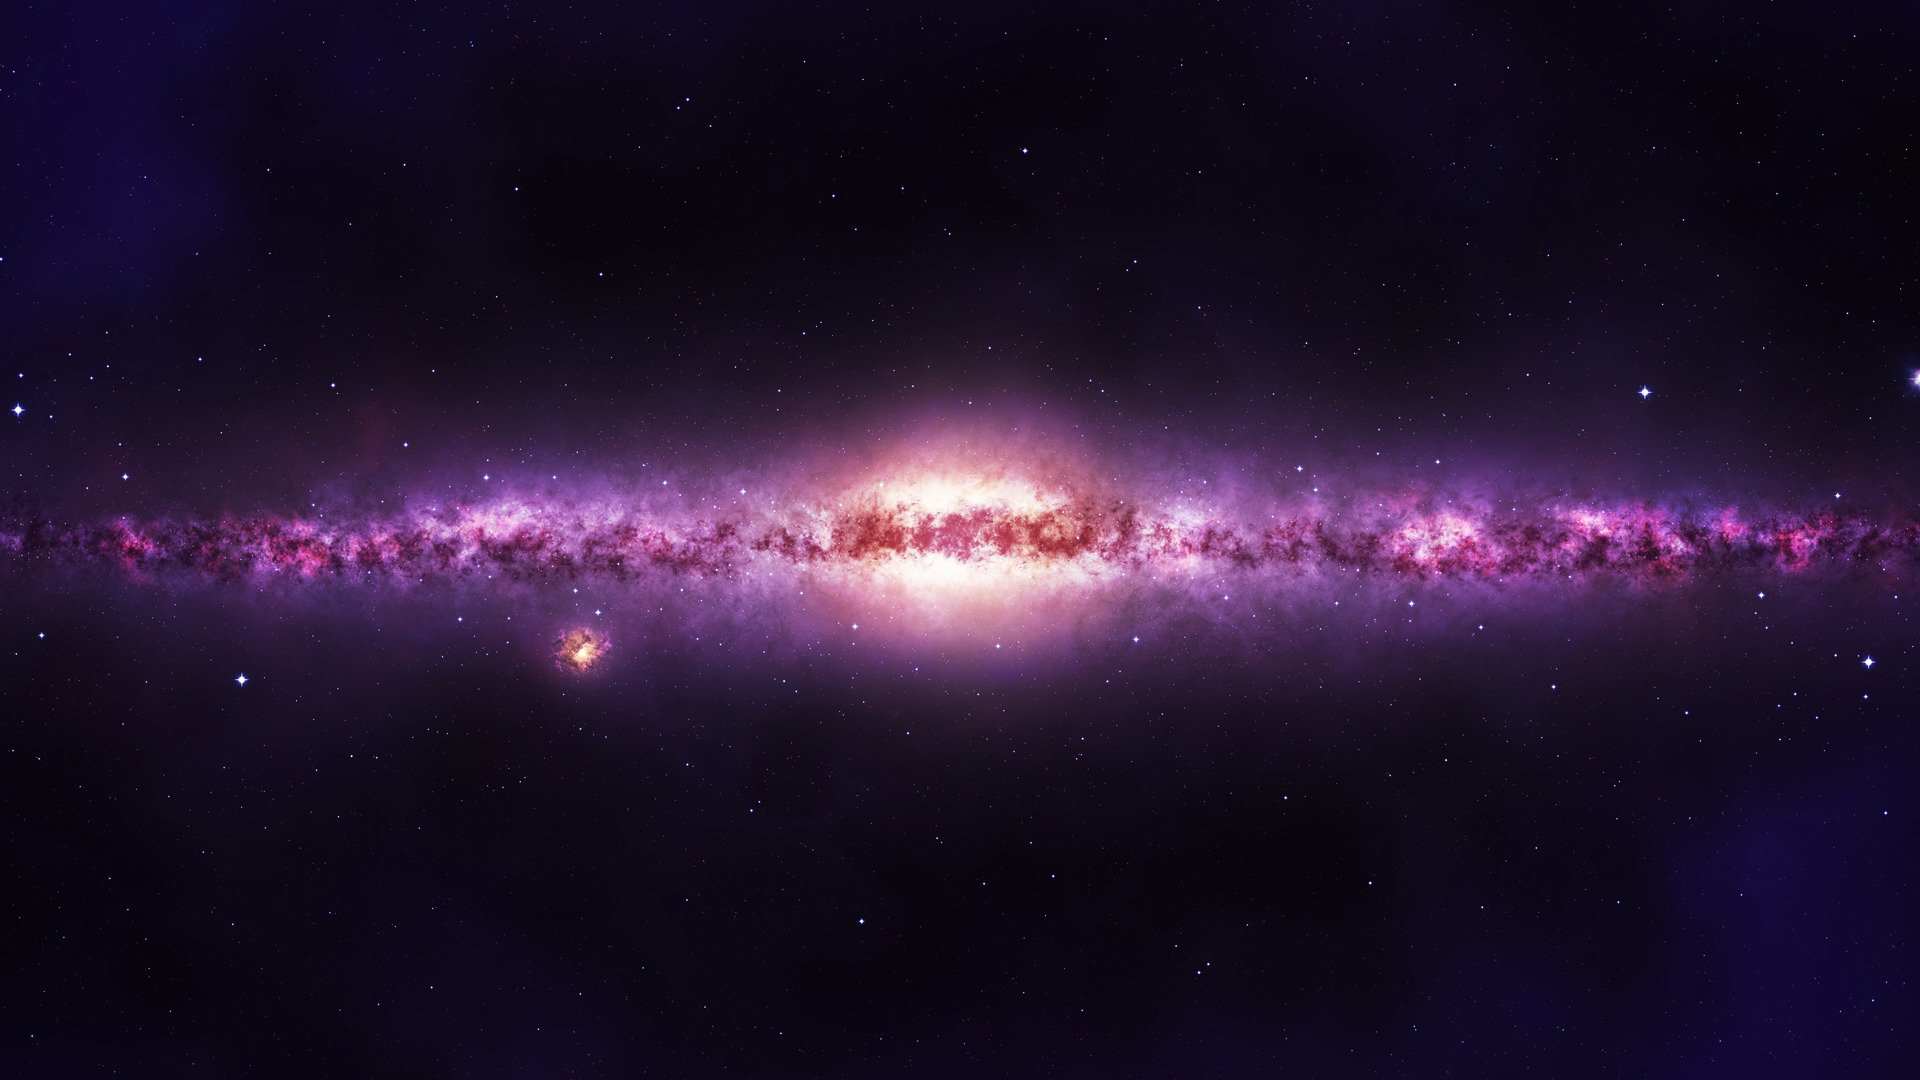 Galaxy Space Live Wallpapers Hd By Narendra Doriya: Stars, Space, Planet, Galaxy HD Wallpapers / Desktop And